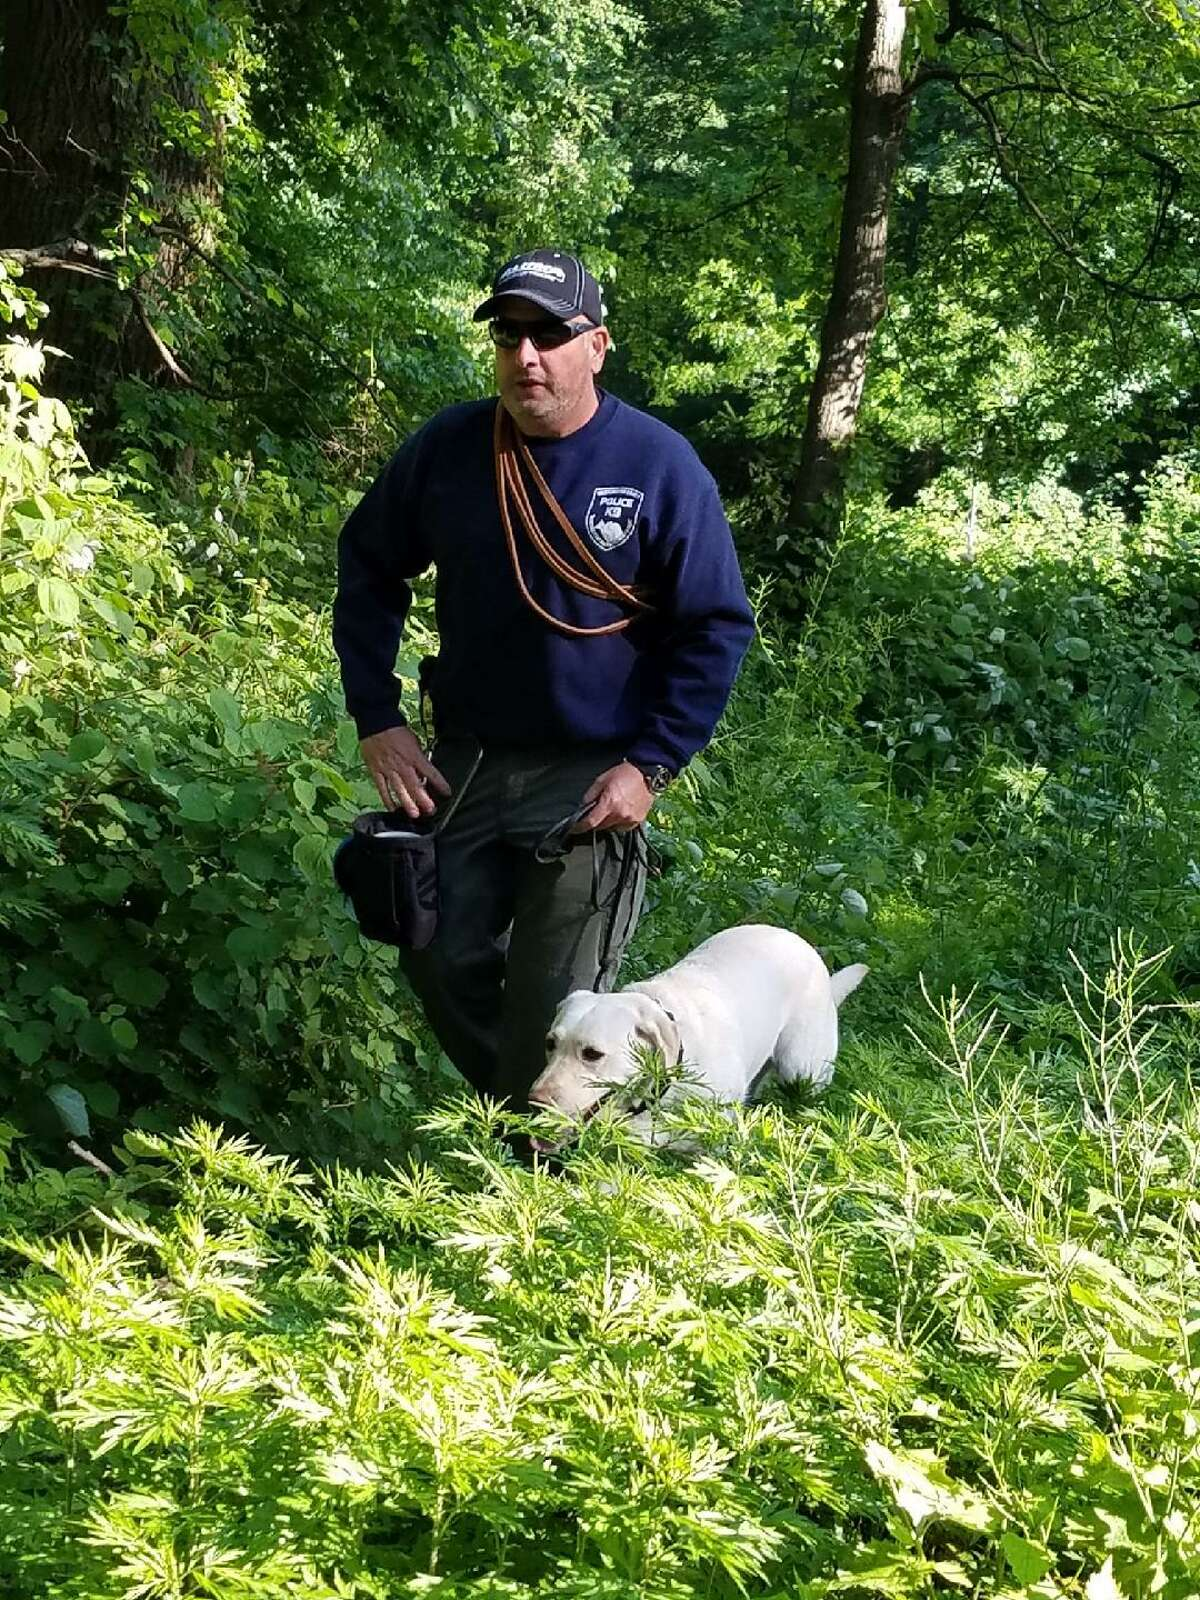 State Police with dogs trained to sniff out electronic equipment search Waveny Park in New Canaan for a cell phone as part of the investigation into the disappearance of Jennifer Dulos on Monday, June 3.